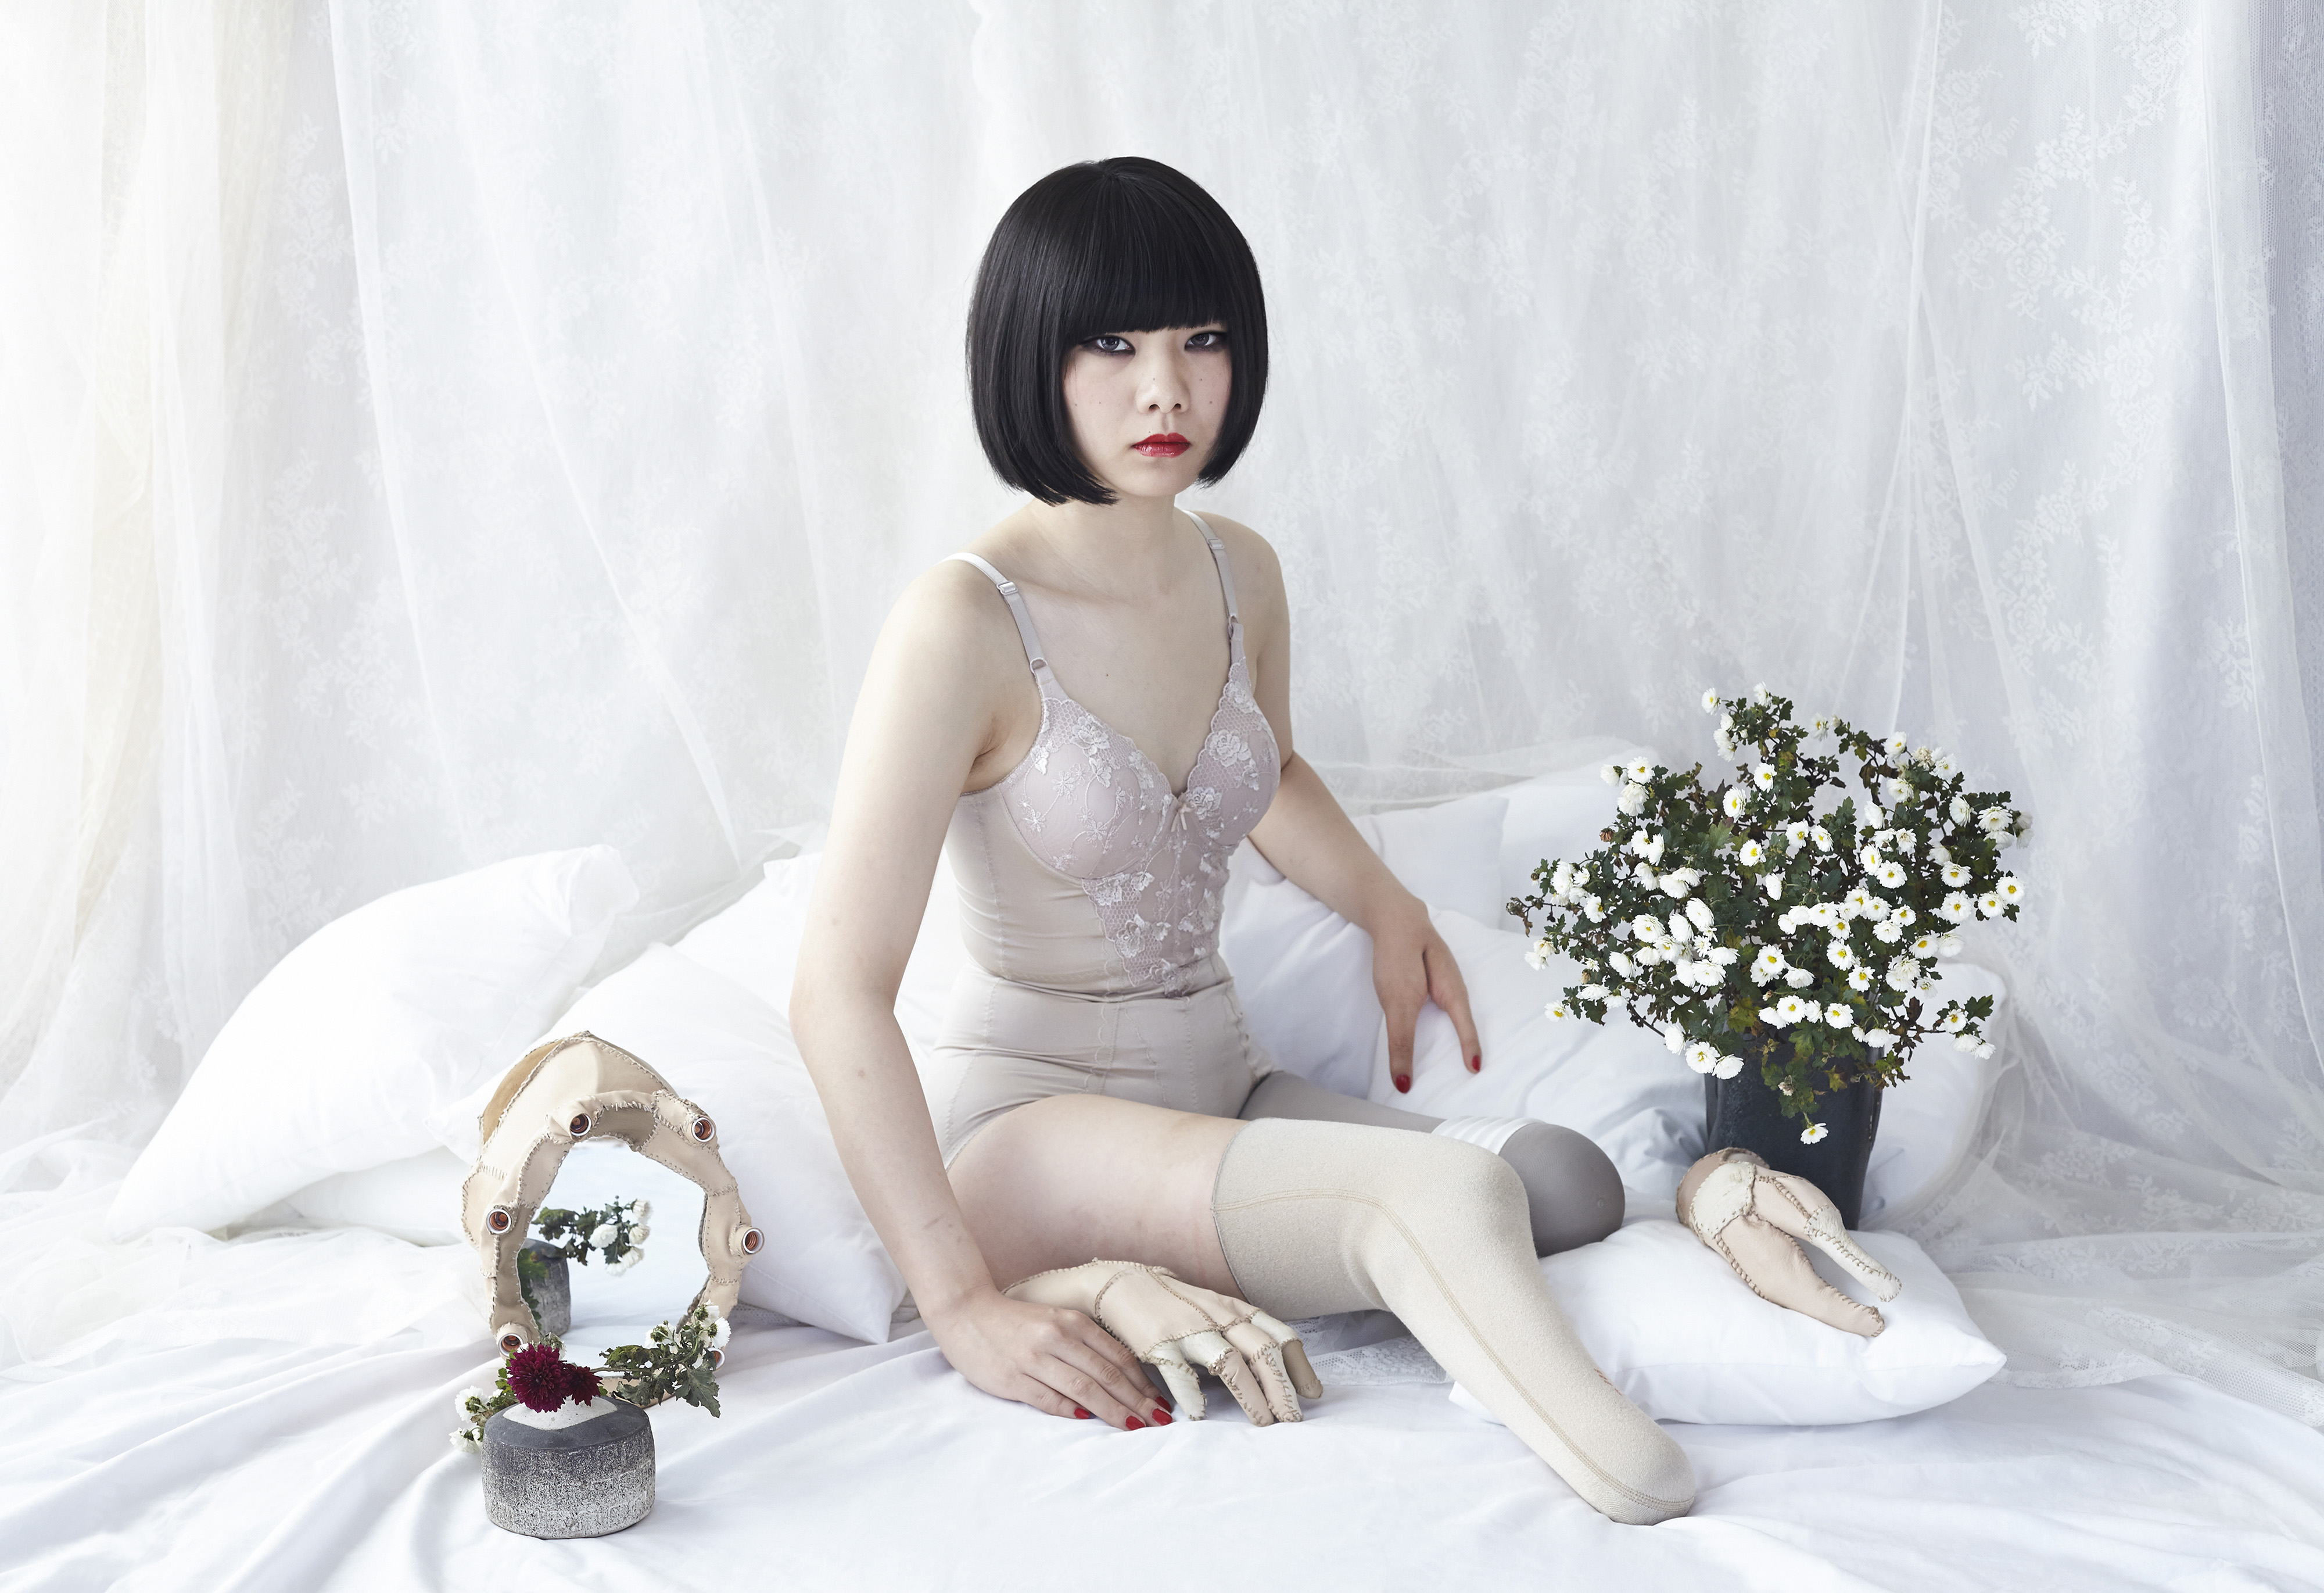 Mari Katayama, you're Mine #002, 2014. © Mari Katayama. Courtesy of rin art association